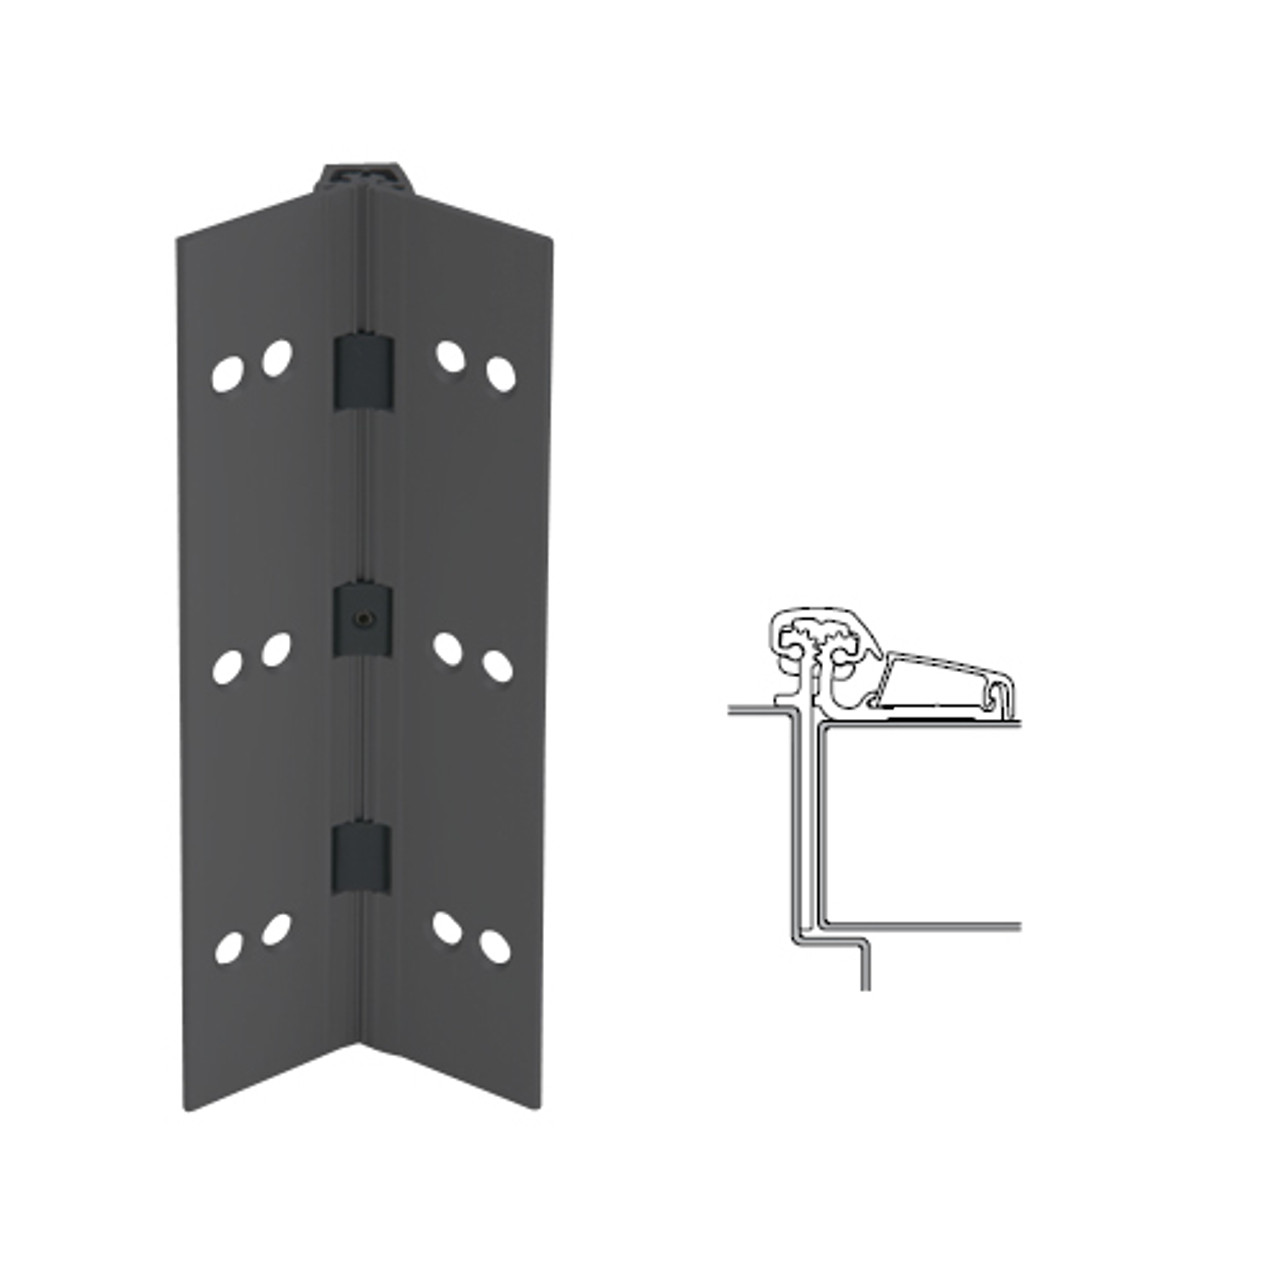 054XY-315AN-83-TEKWD IVES Adjustable Half Surface Continuous Geared Hinges with Wood Screws in Anodized Black